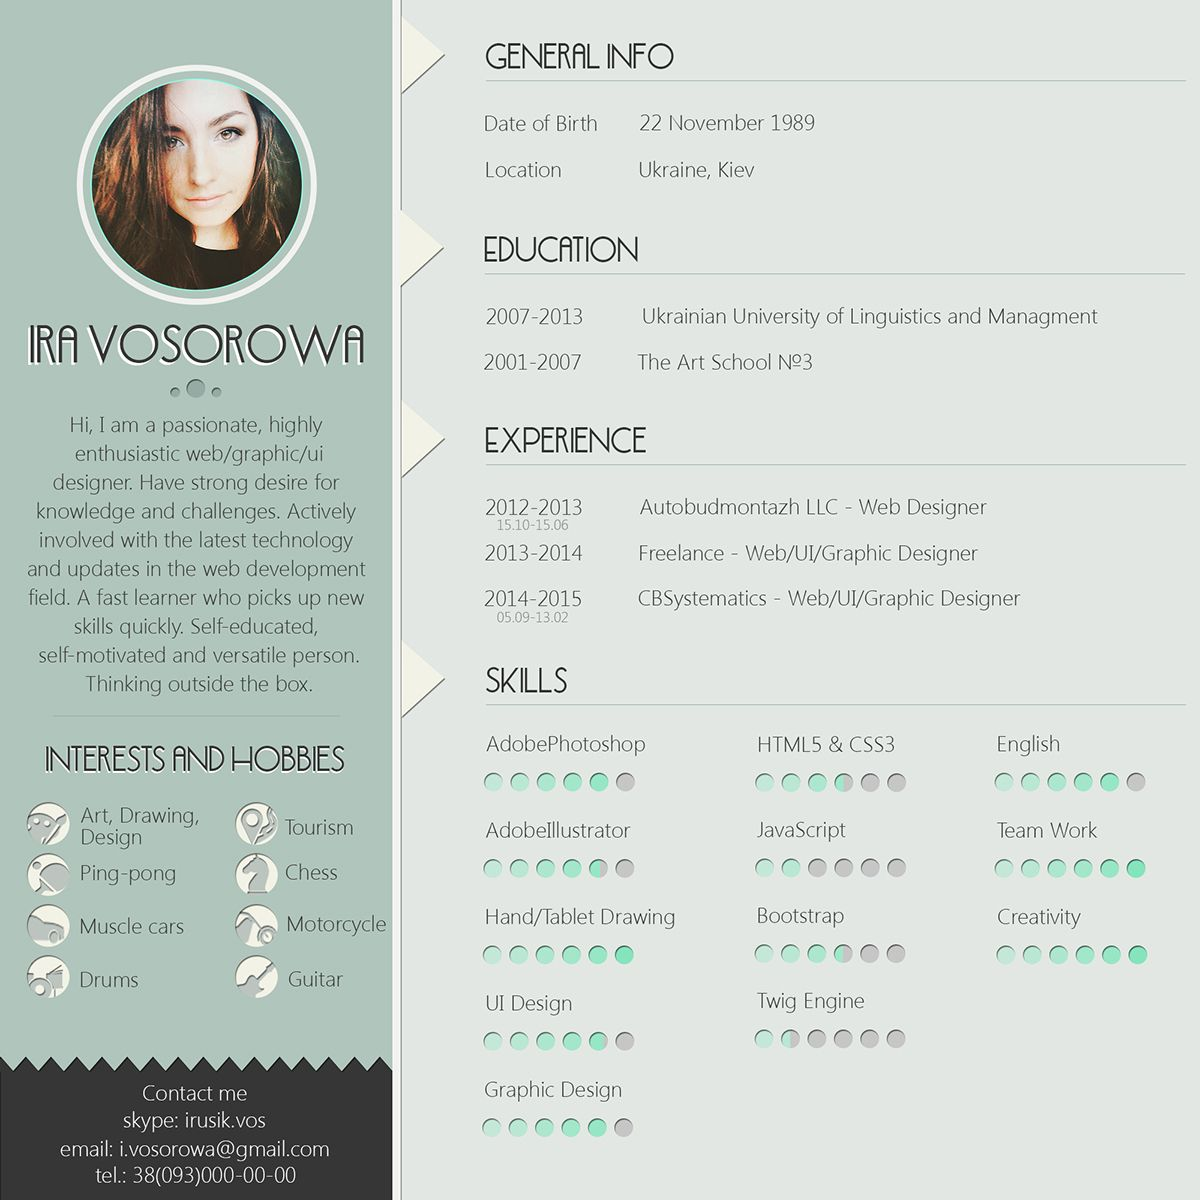 mint cv design on the links below you can get psd template creative